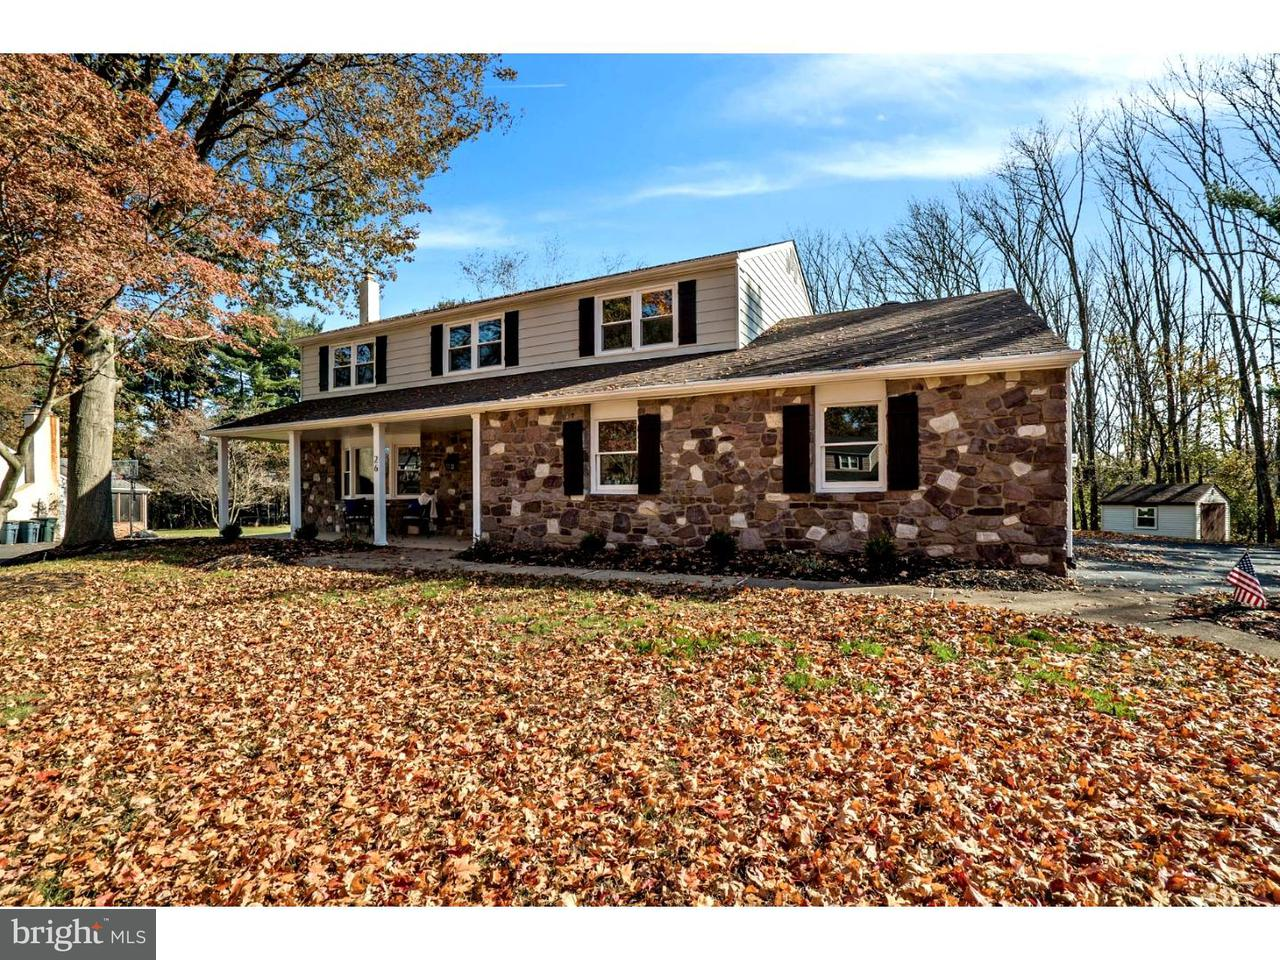 Single Family Home for Sale at 26 GREEN MEADOW Circle Churchville, Pennsylvania 18966 United States